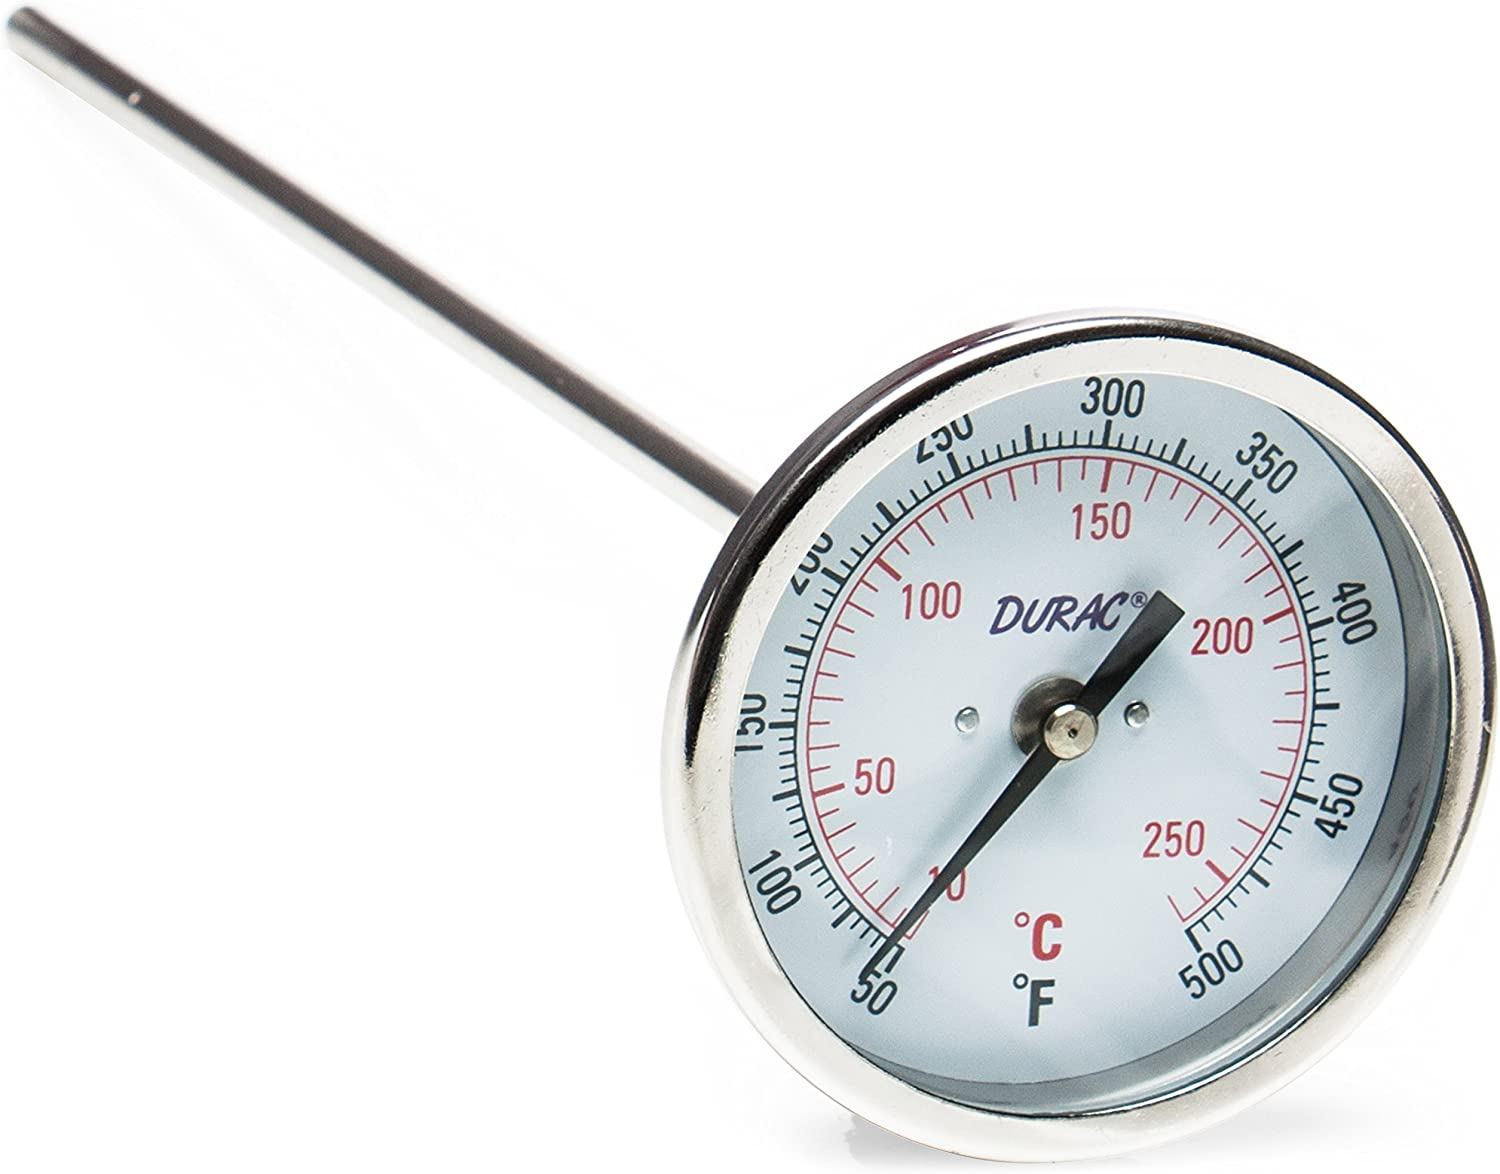 H-B DURAC Bi-Metallic Dial Thermometer; 10 to 260C (50 to 500F), 1 2 in. NPT Threaded Connection, 75mm Dial (B61310-9200)